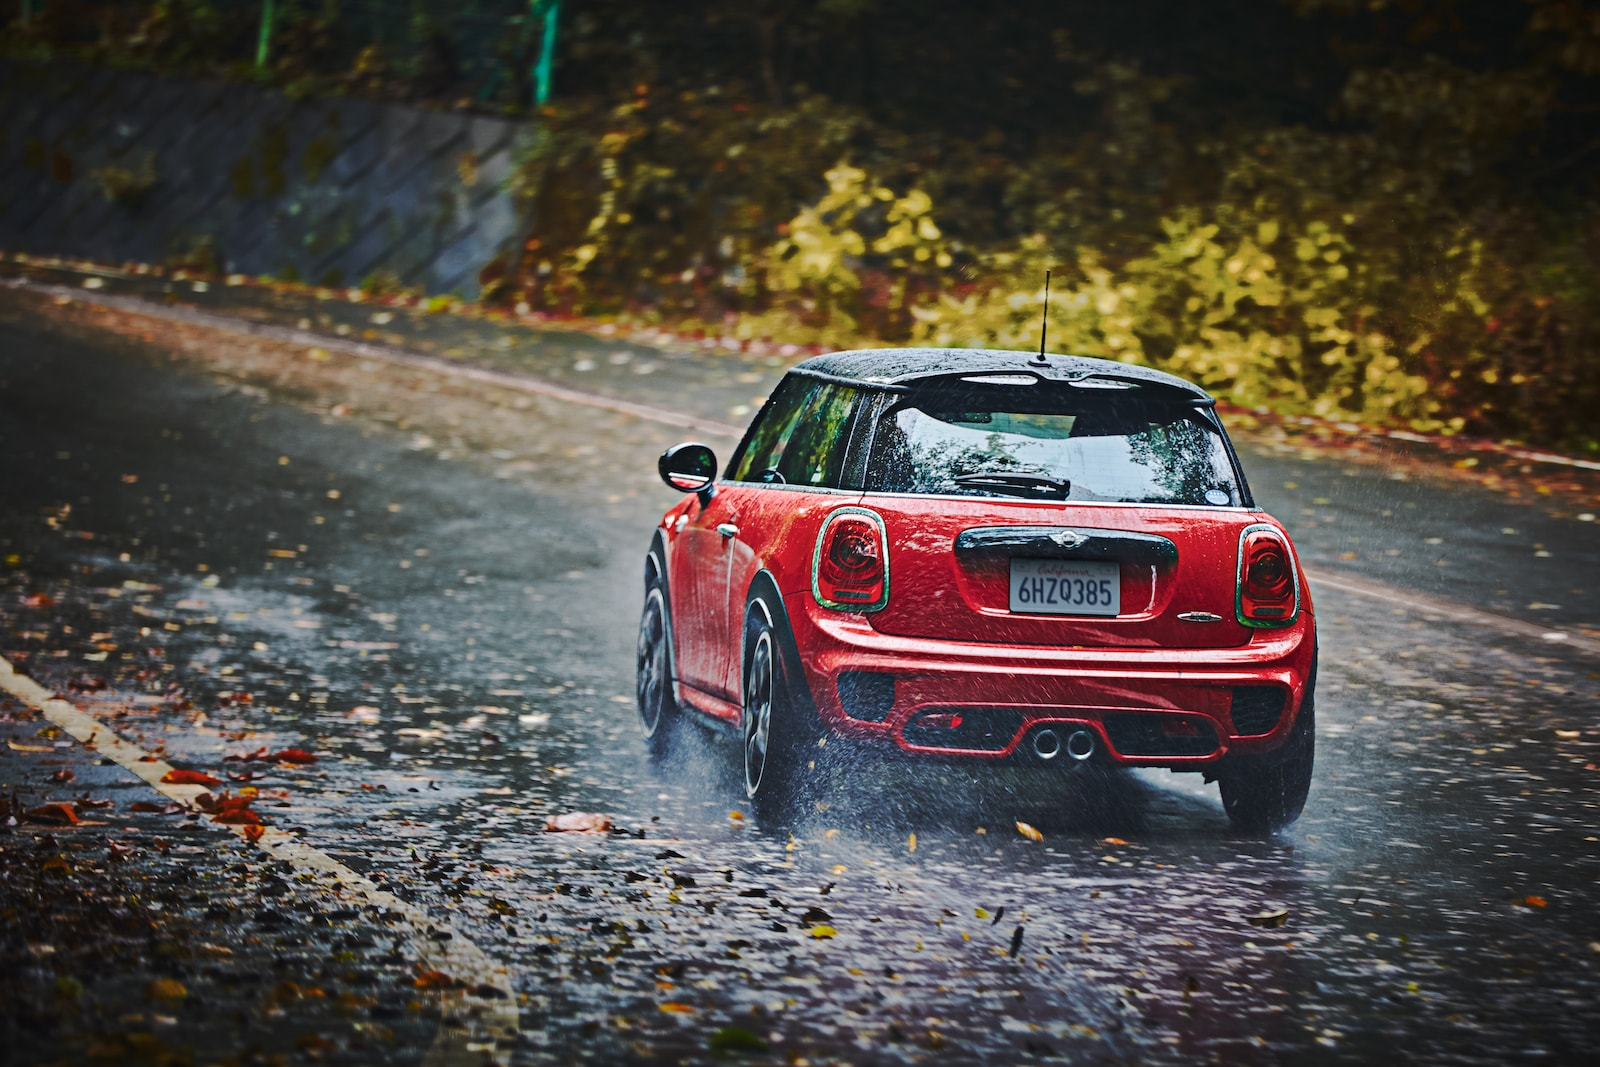 THE MINI FALL TIRE EVENT